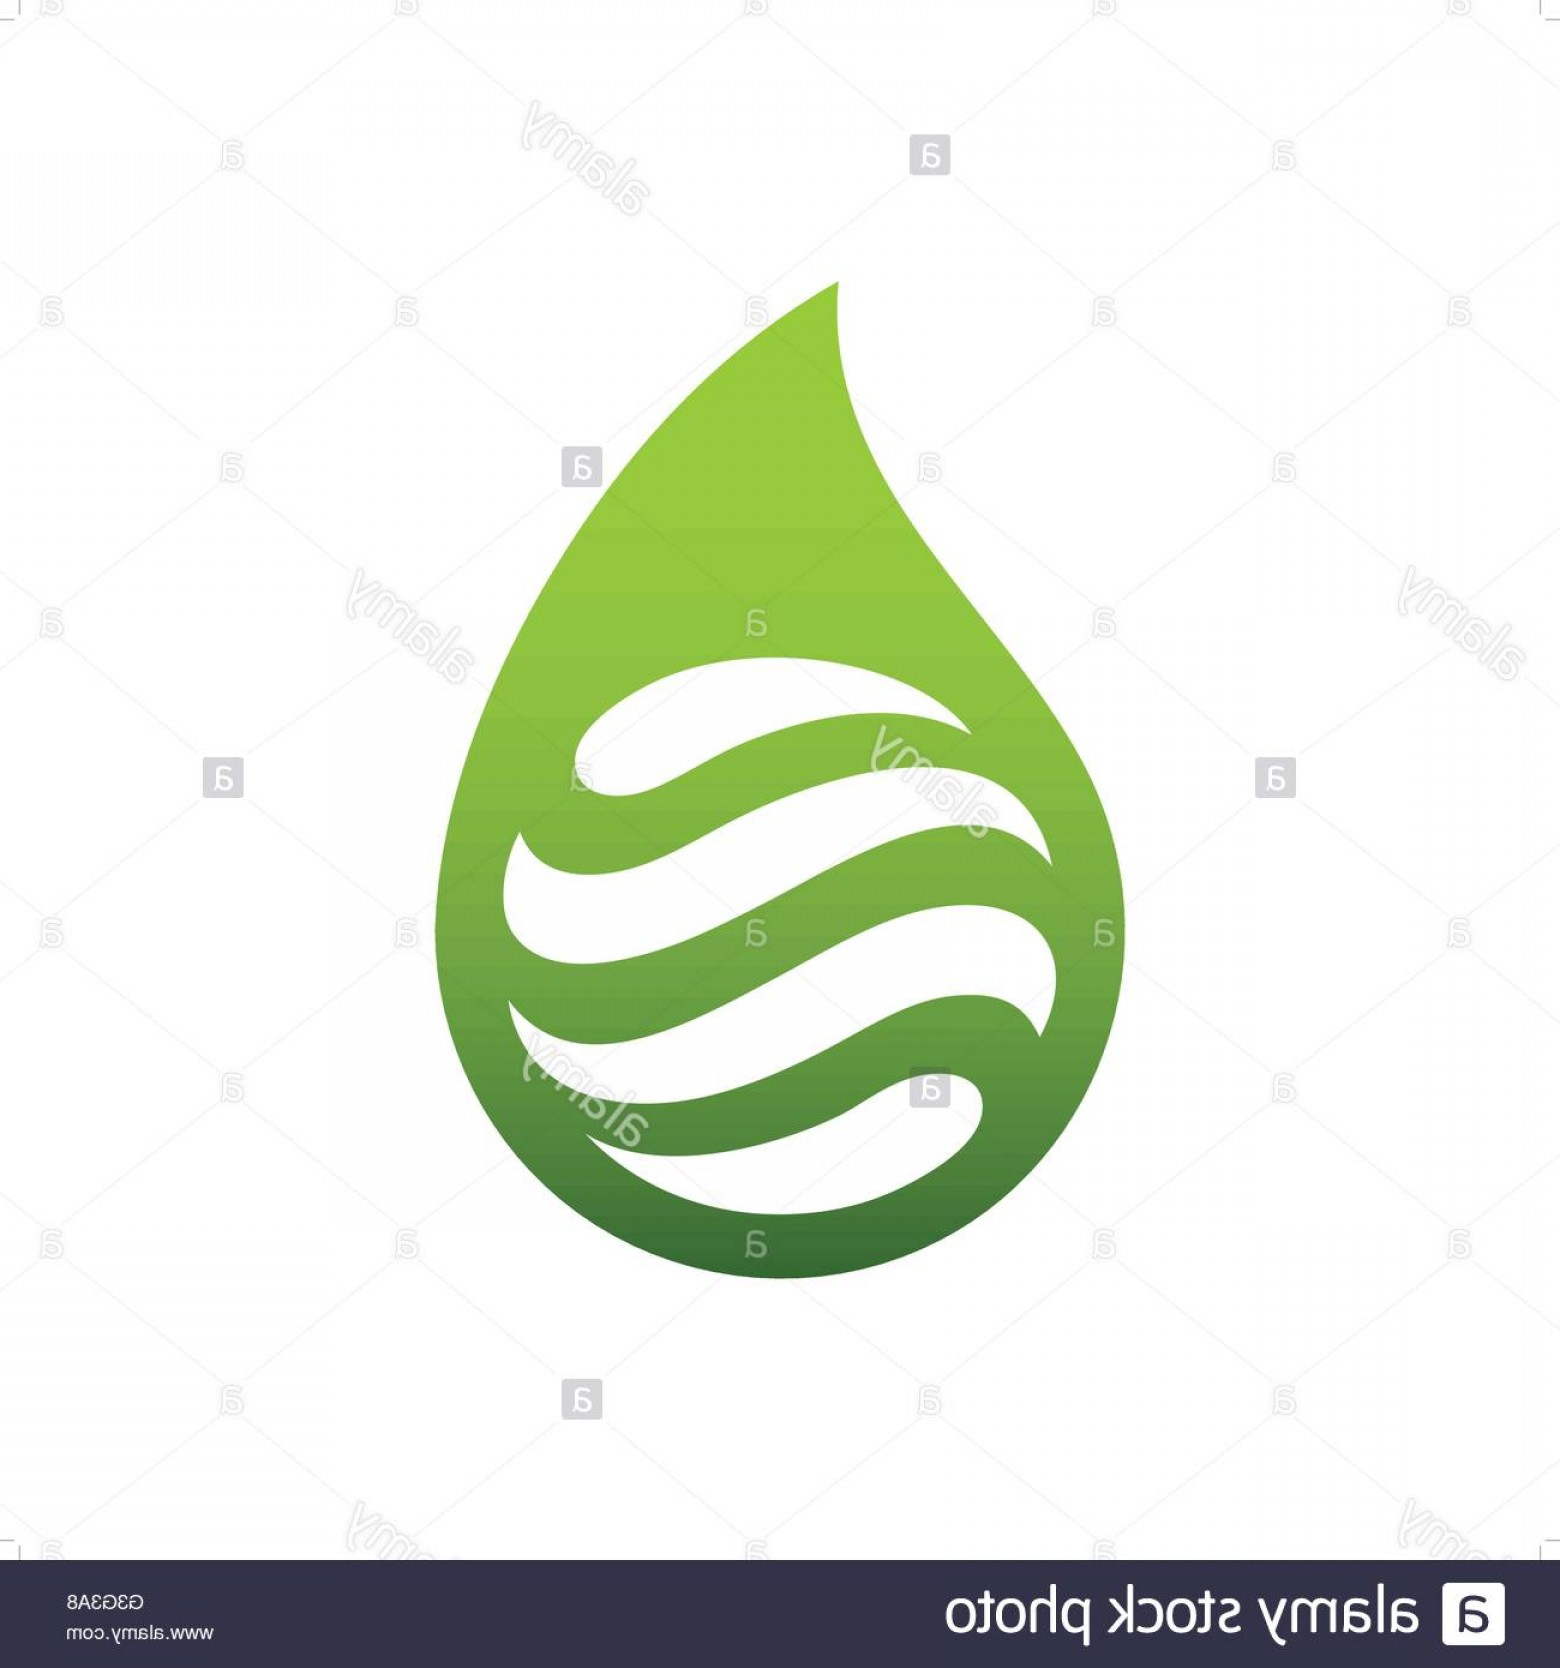 Cleaning Logo Vector Art: Stock Photo Abstract Green Water Drop Or Water Cleaning Logo Vector Illustration